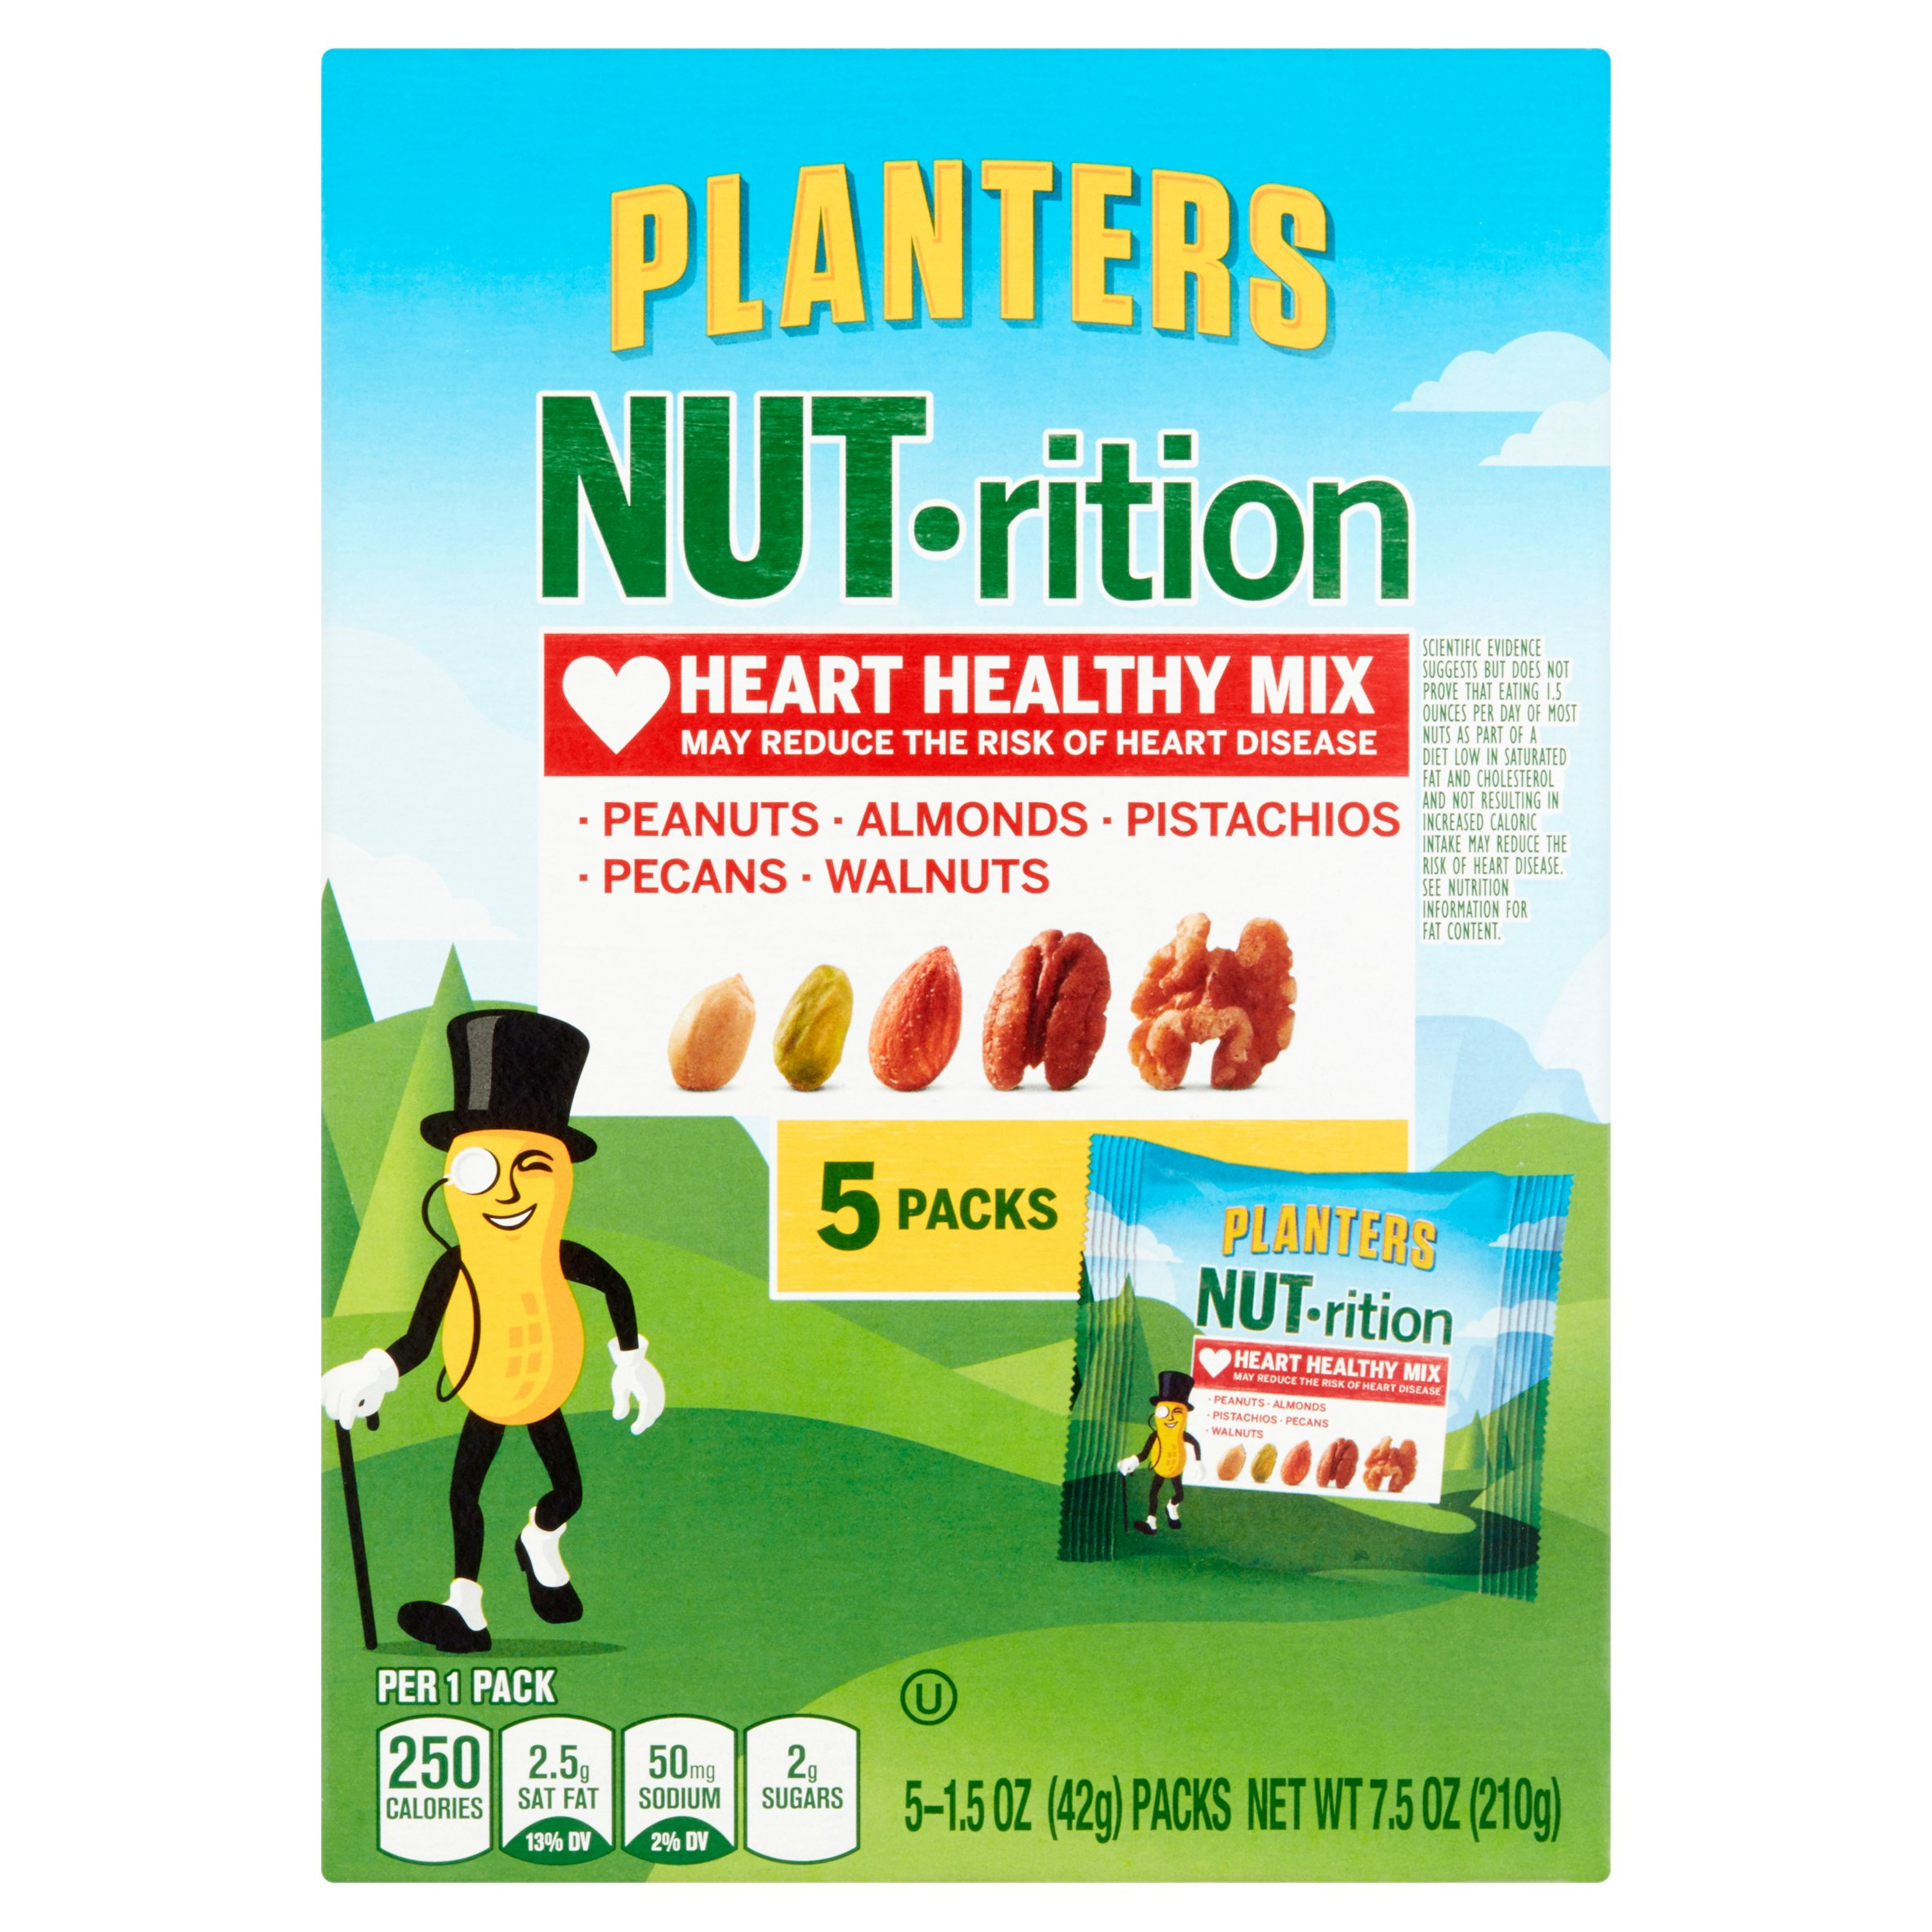 Planters NUT-rition Heart Healthy Mix, 1.5 oz, 5 count